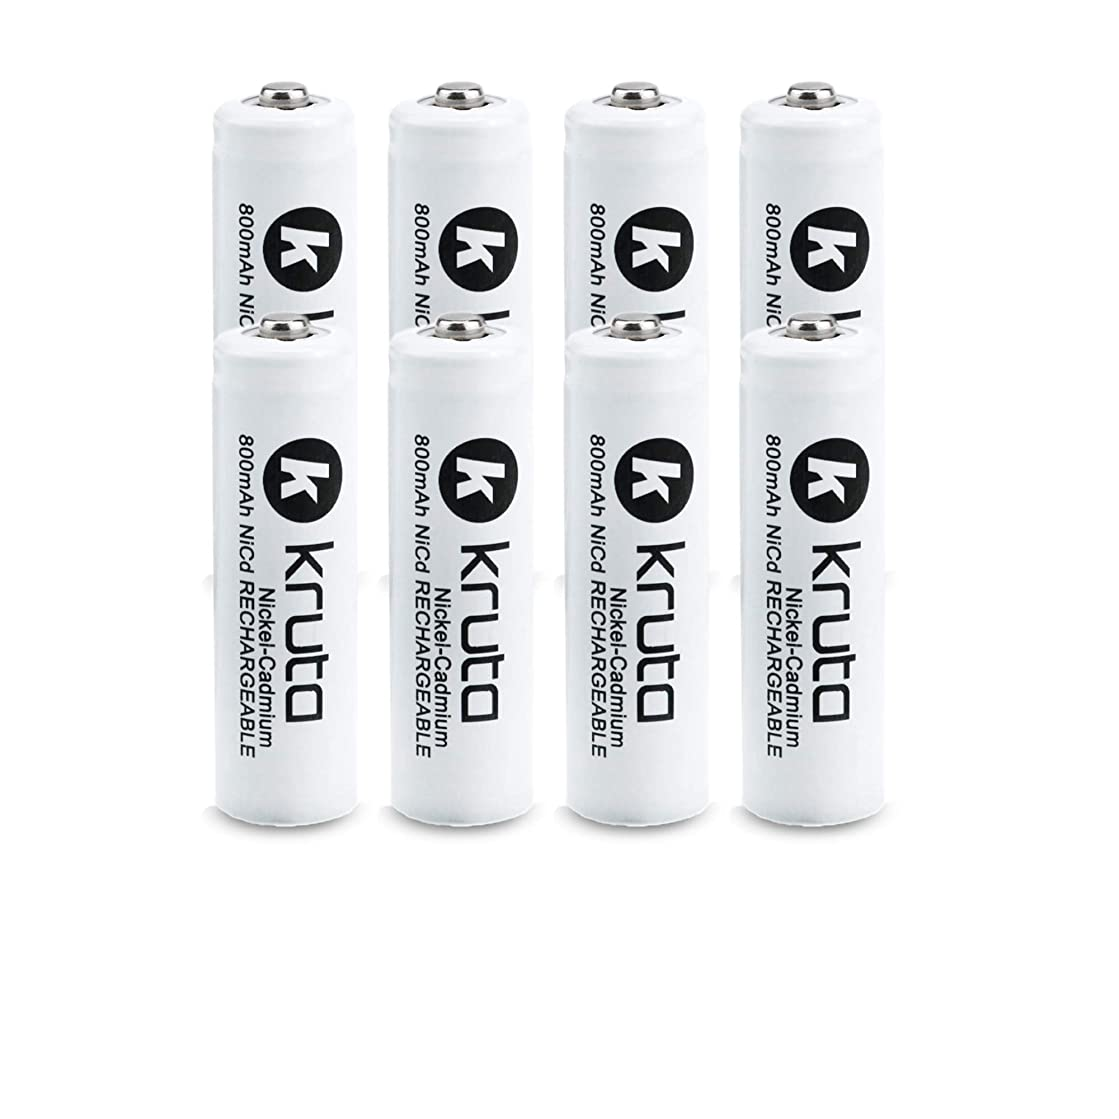 Kruta Rechargeable AA Batteries(8 Counts), 1.2V 800mAh NiCd AA Solar Rechargeable Batteries Pack for Solar Lights Solar Lamp, Garden Lights, Yard Light, Remotes